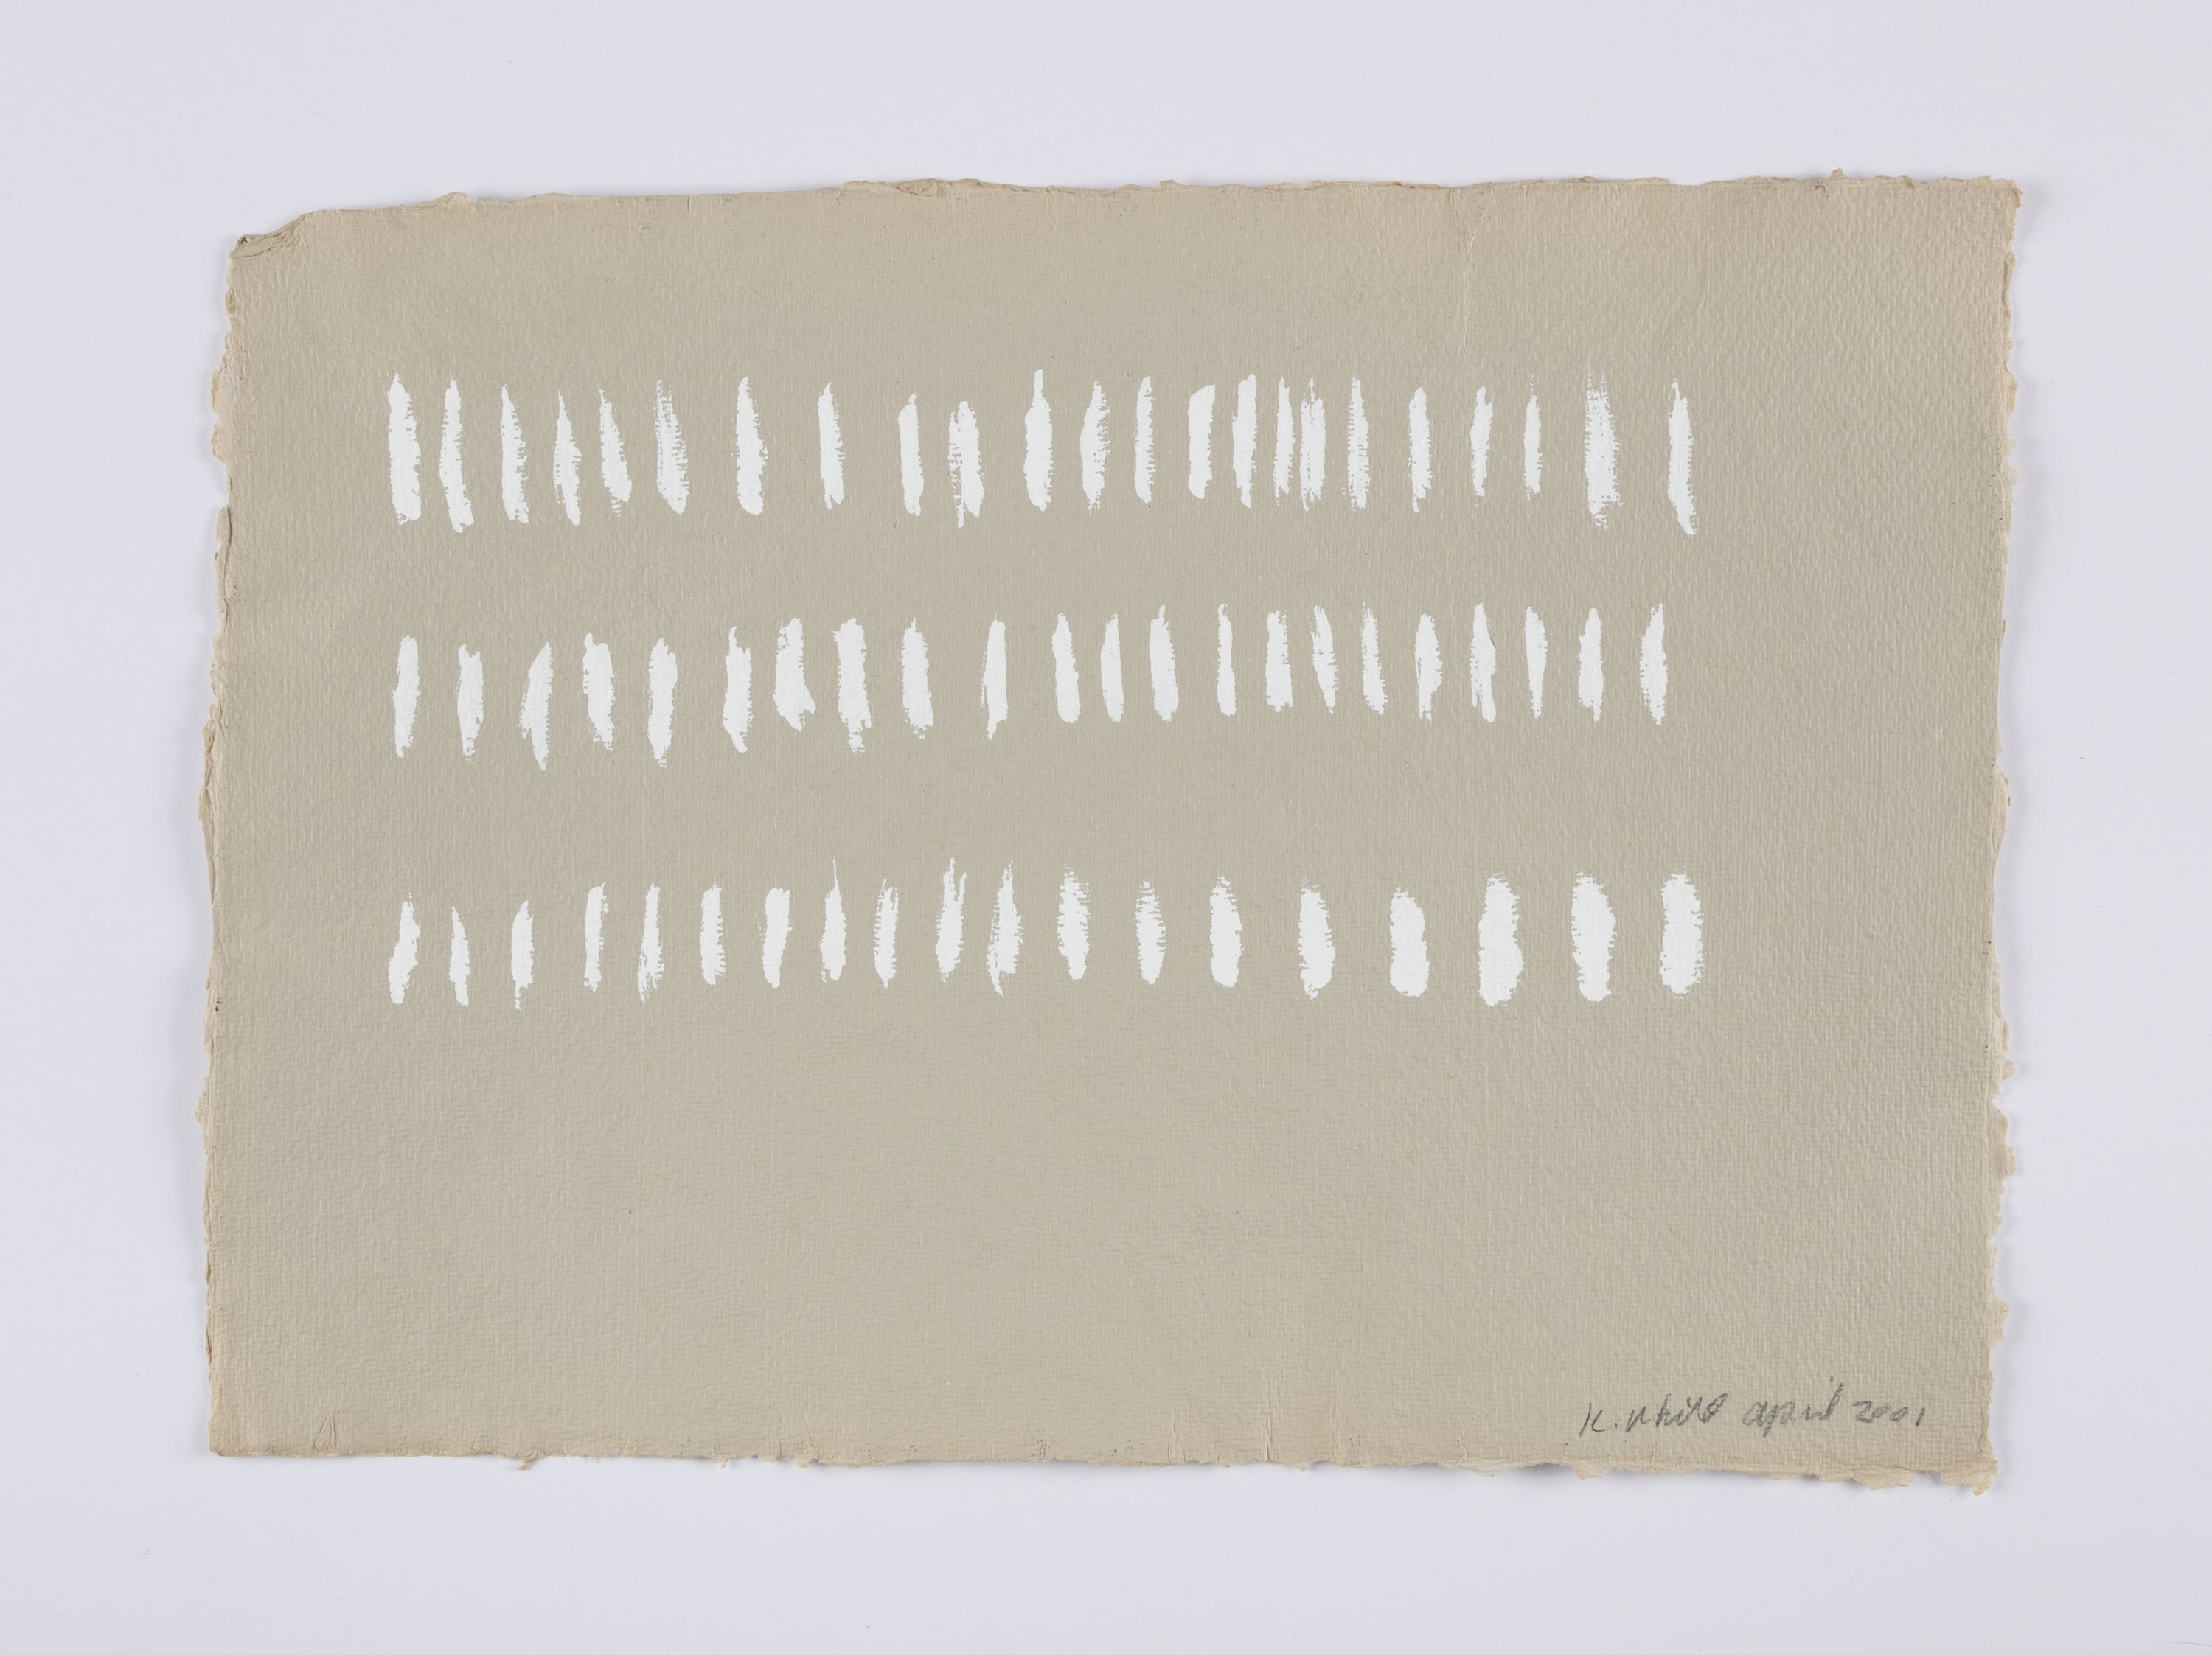 A view of one of the Year of Firsts works, a beige paper with white hash marks in three rows